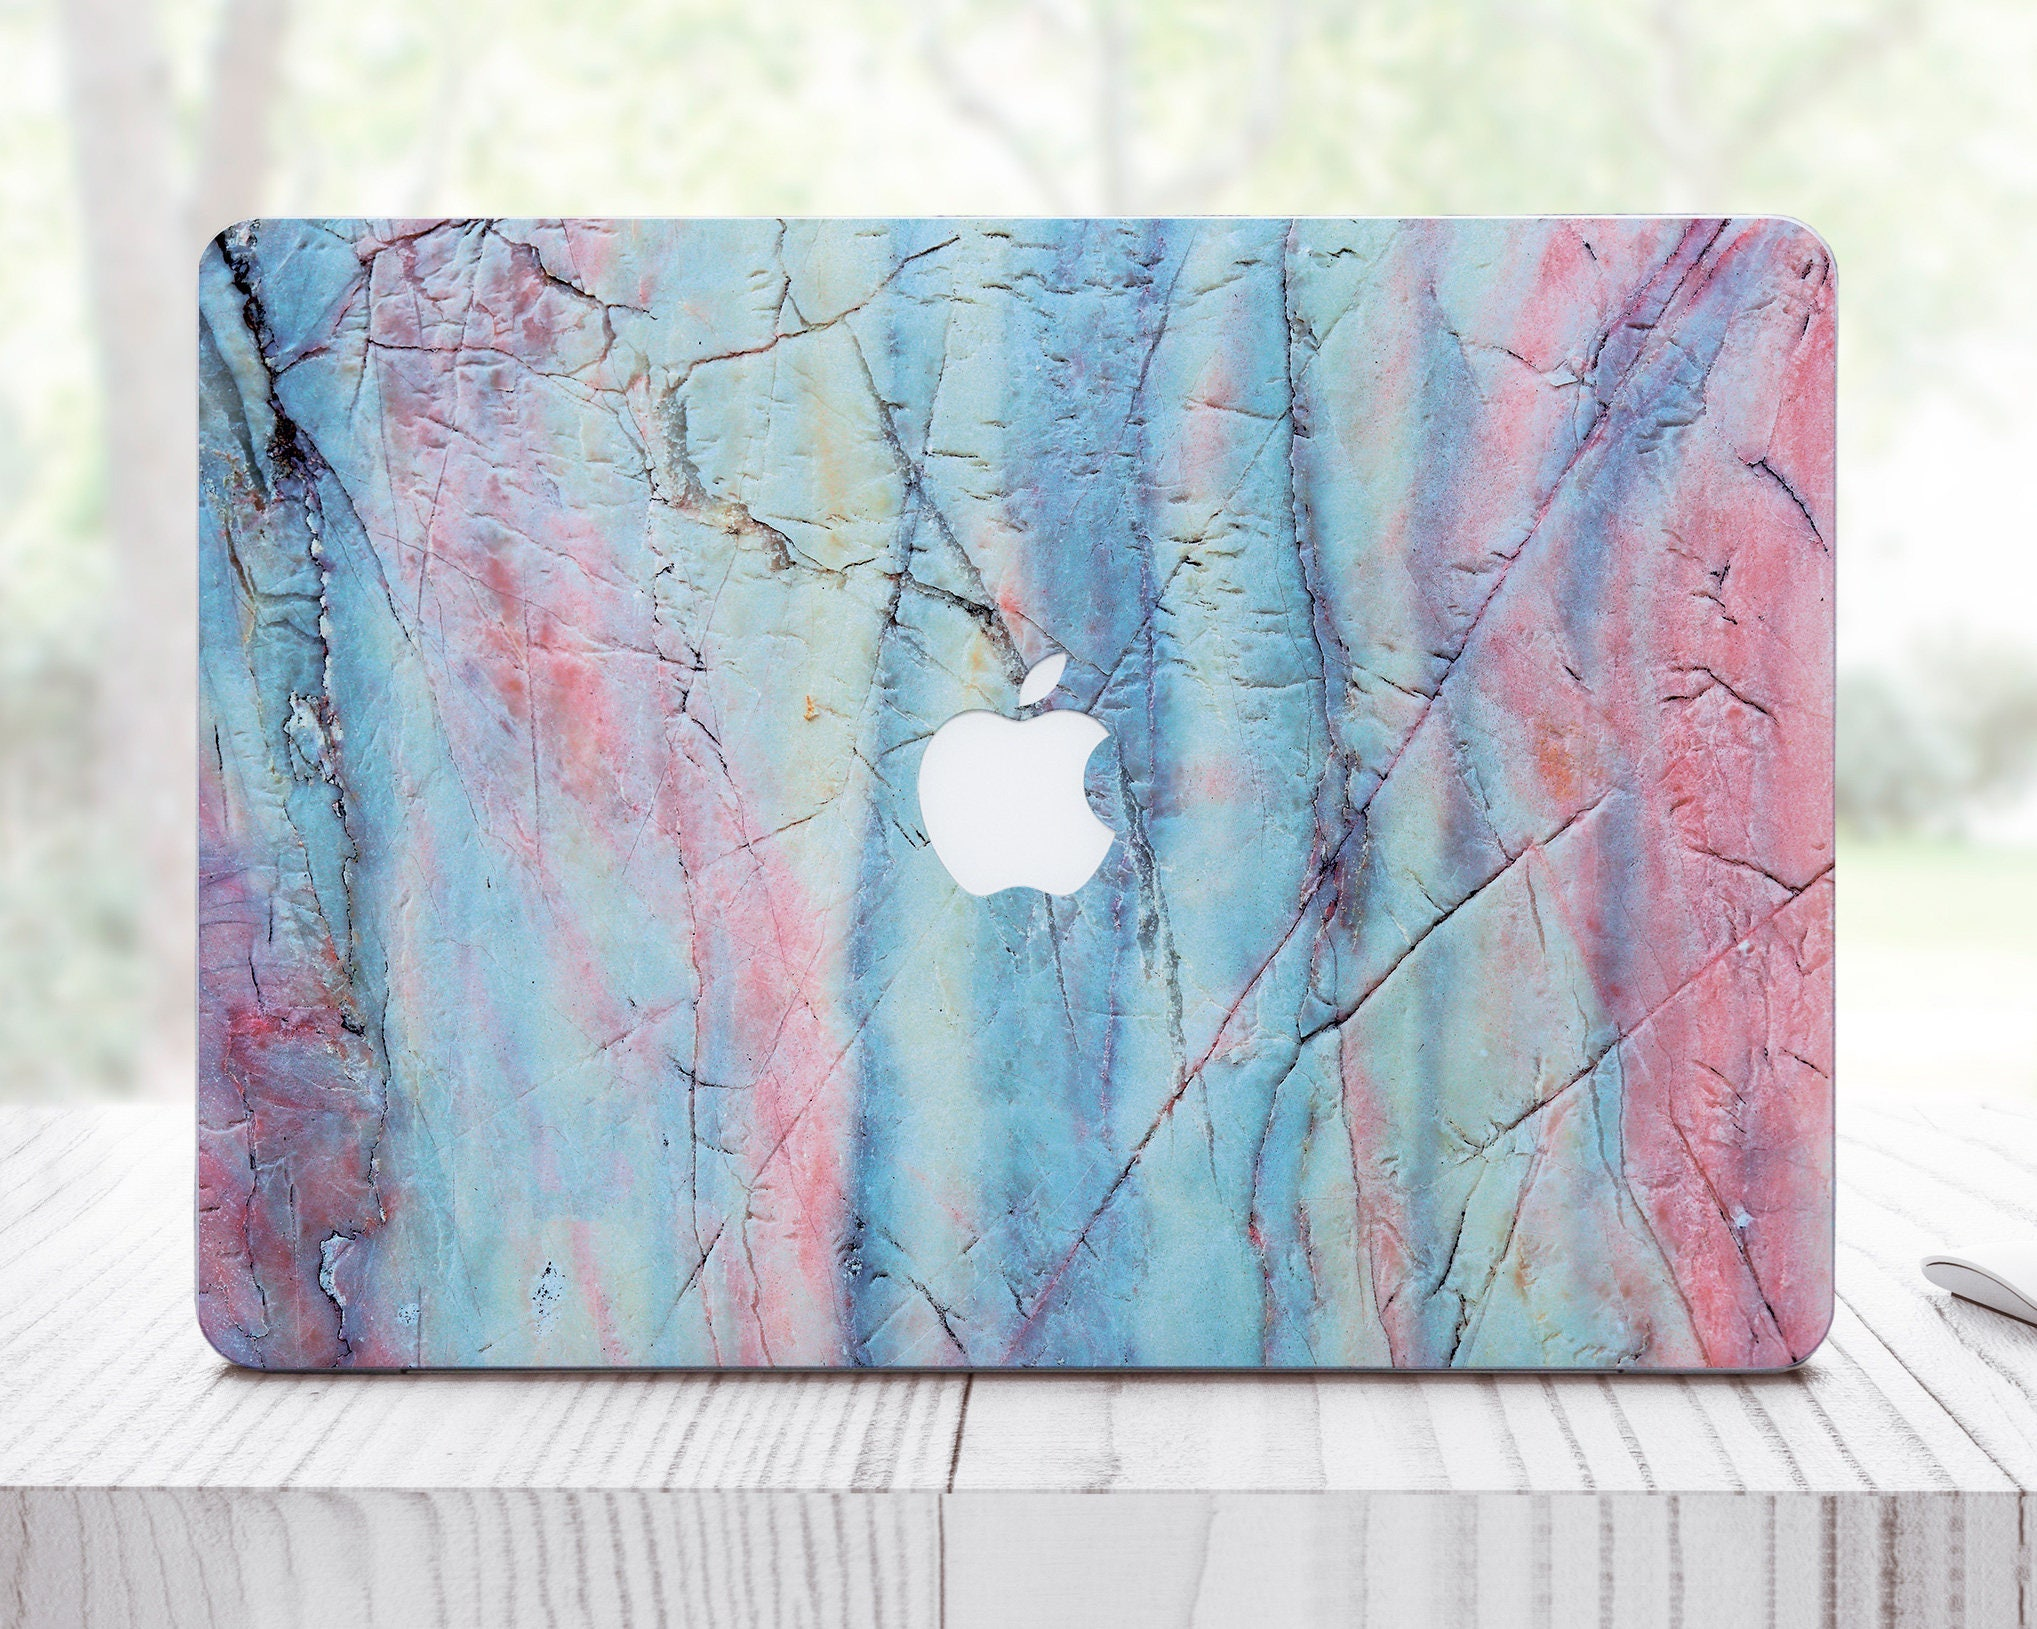 Marble Sticker For MacBook Air 13 Sticker Mac Pro 15 2016 Sticker MacBook Pro Sticker 13 Inch Apple MacBook Skin MacBook Pro Retina ES0067